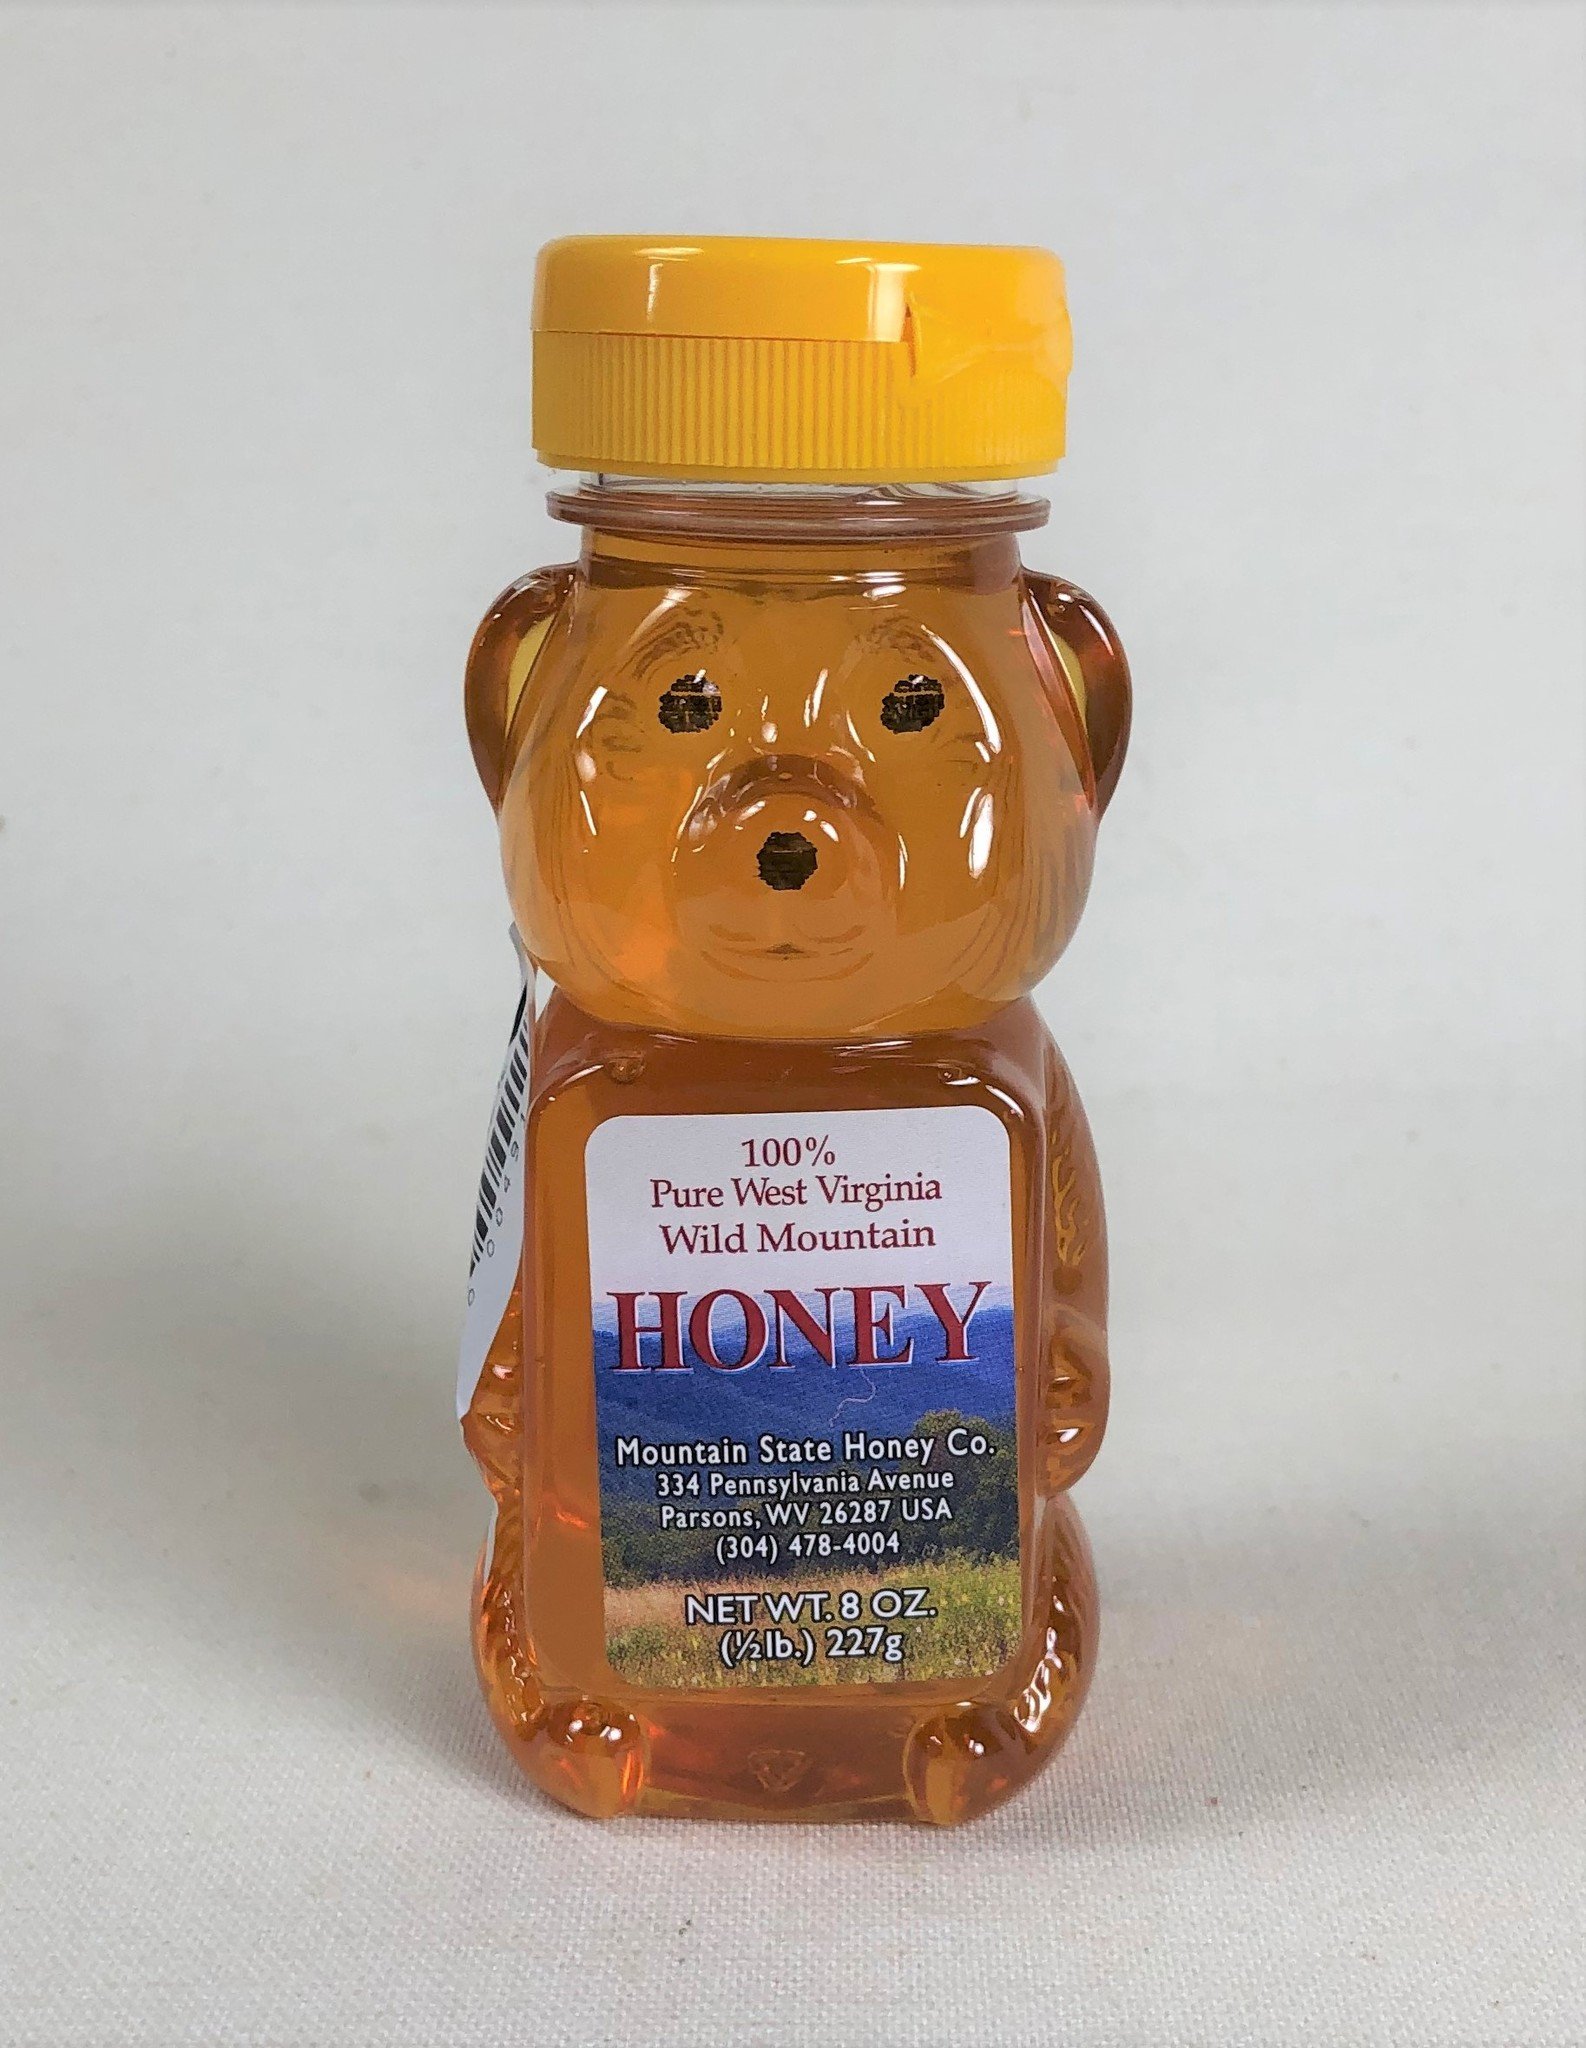 Mountain State Honey Company Mtn State Honey 8 oz. Basswood Bear